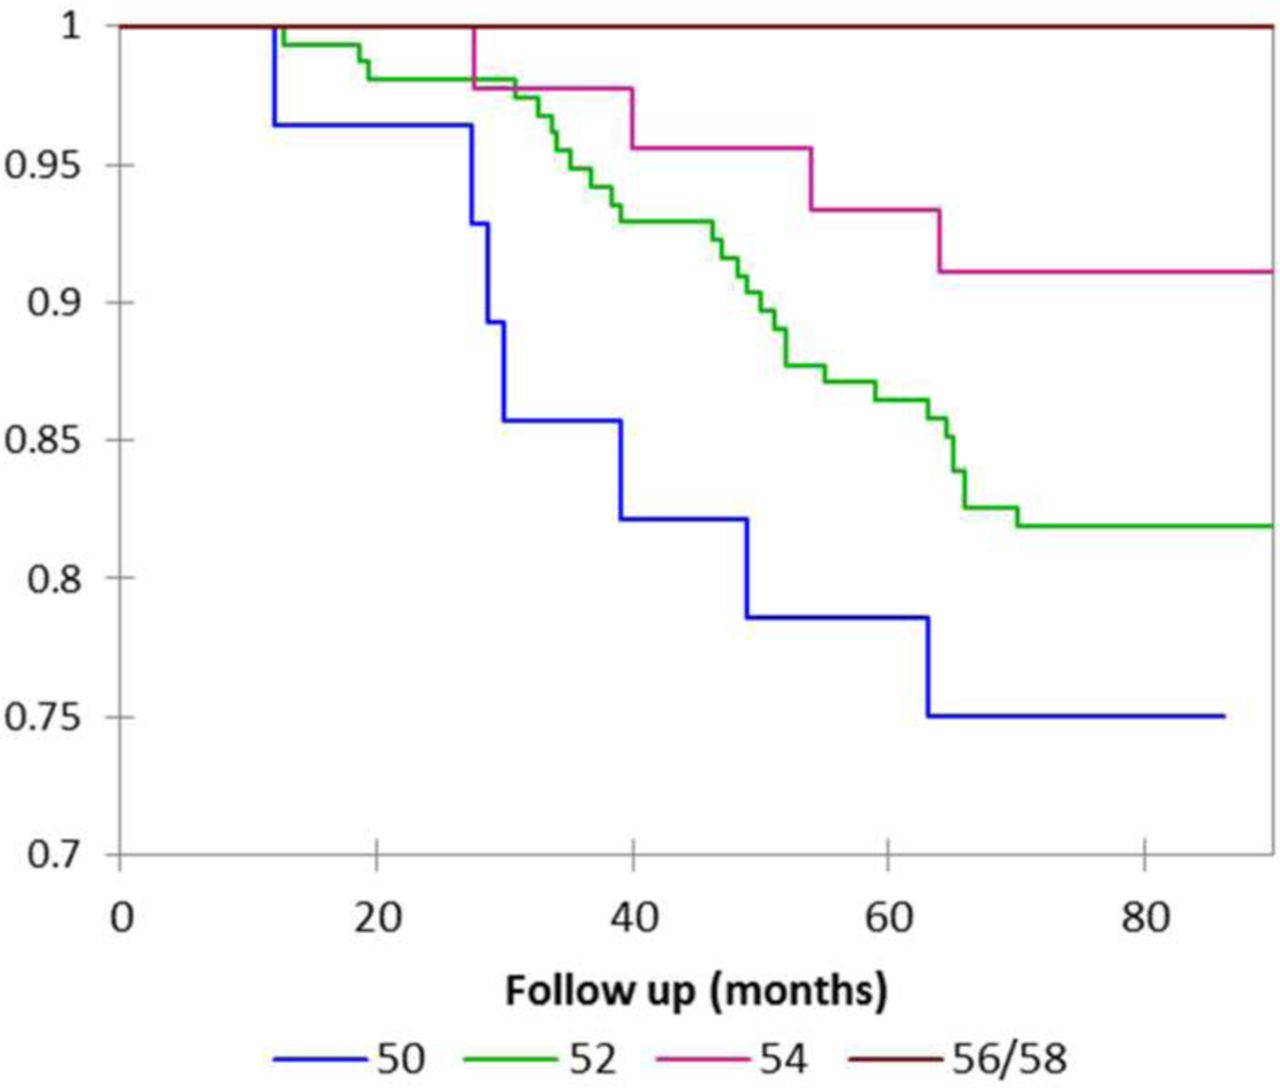 Retrospective cohort study of the performance of the Pinnacle.